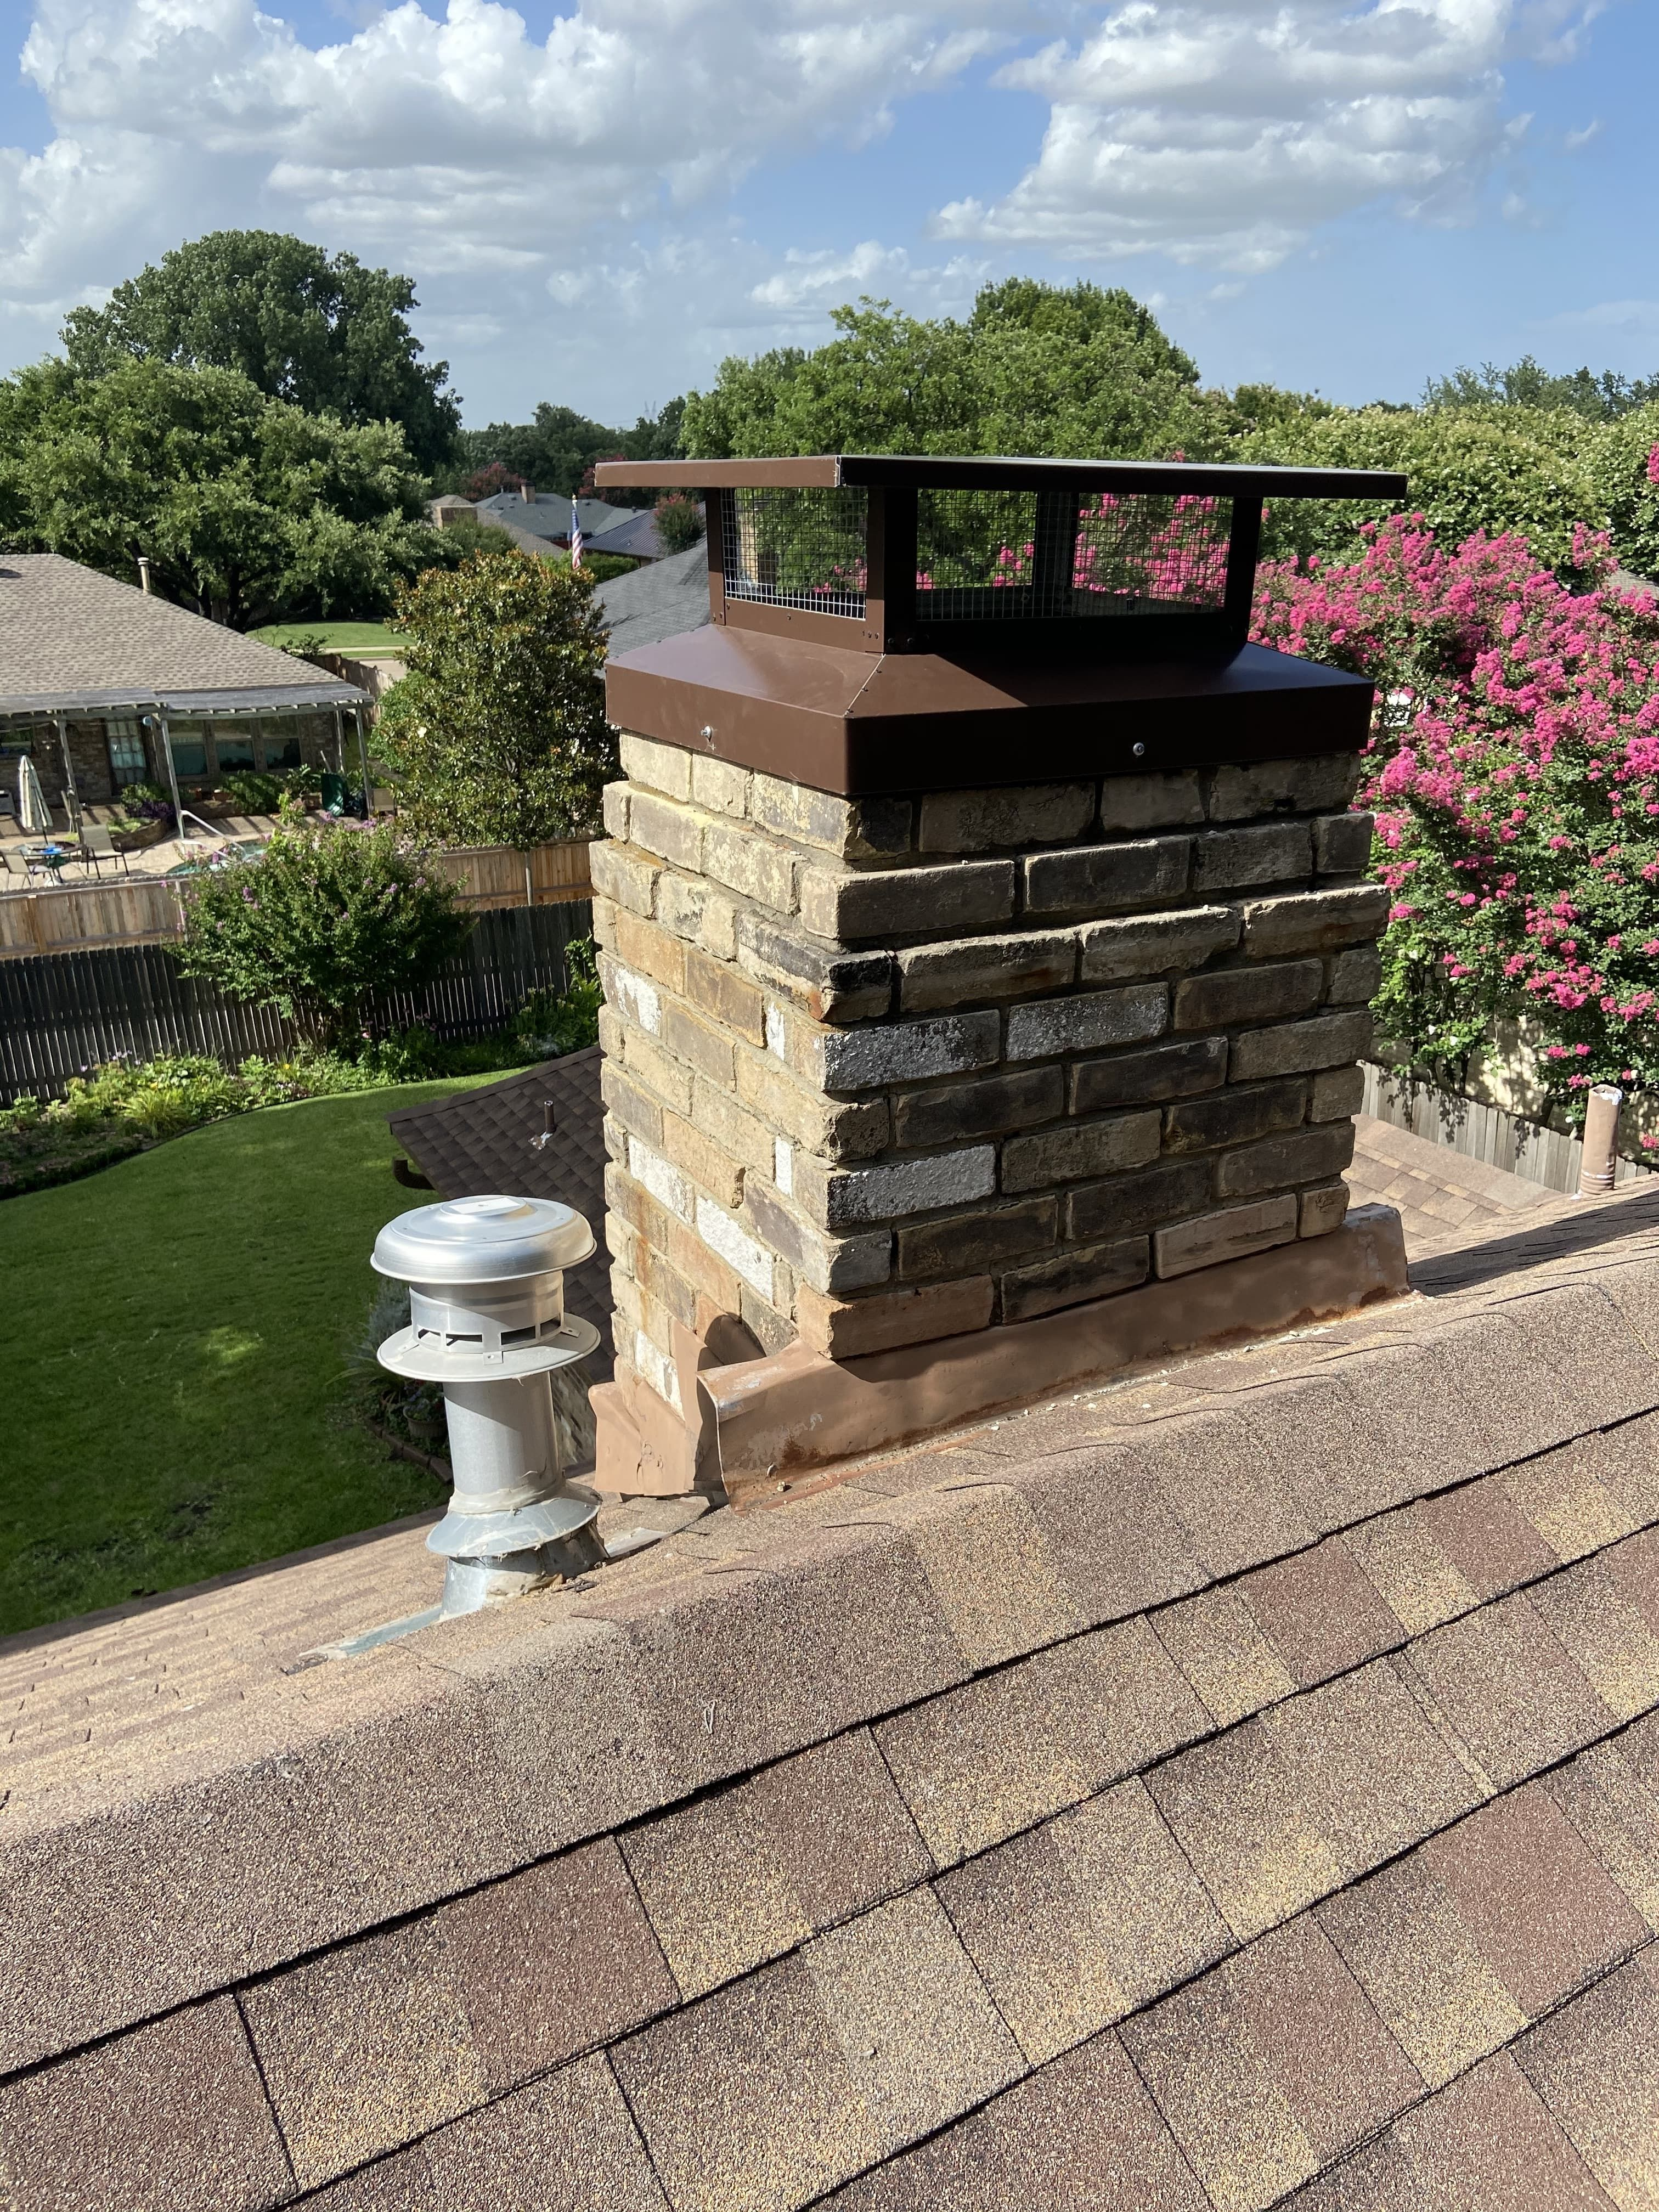 Chimney chat growing up in our family business in 2020